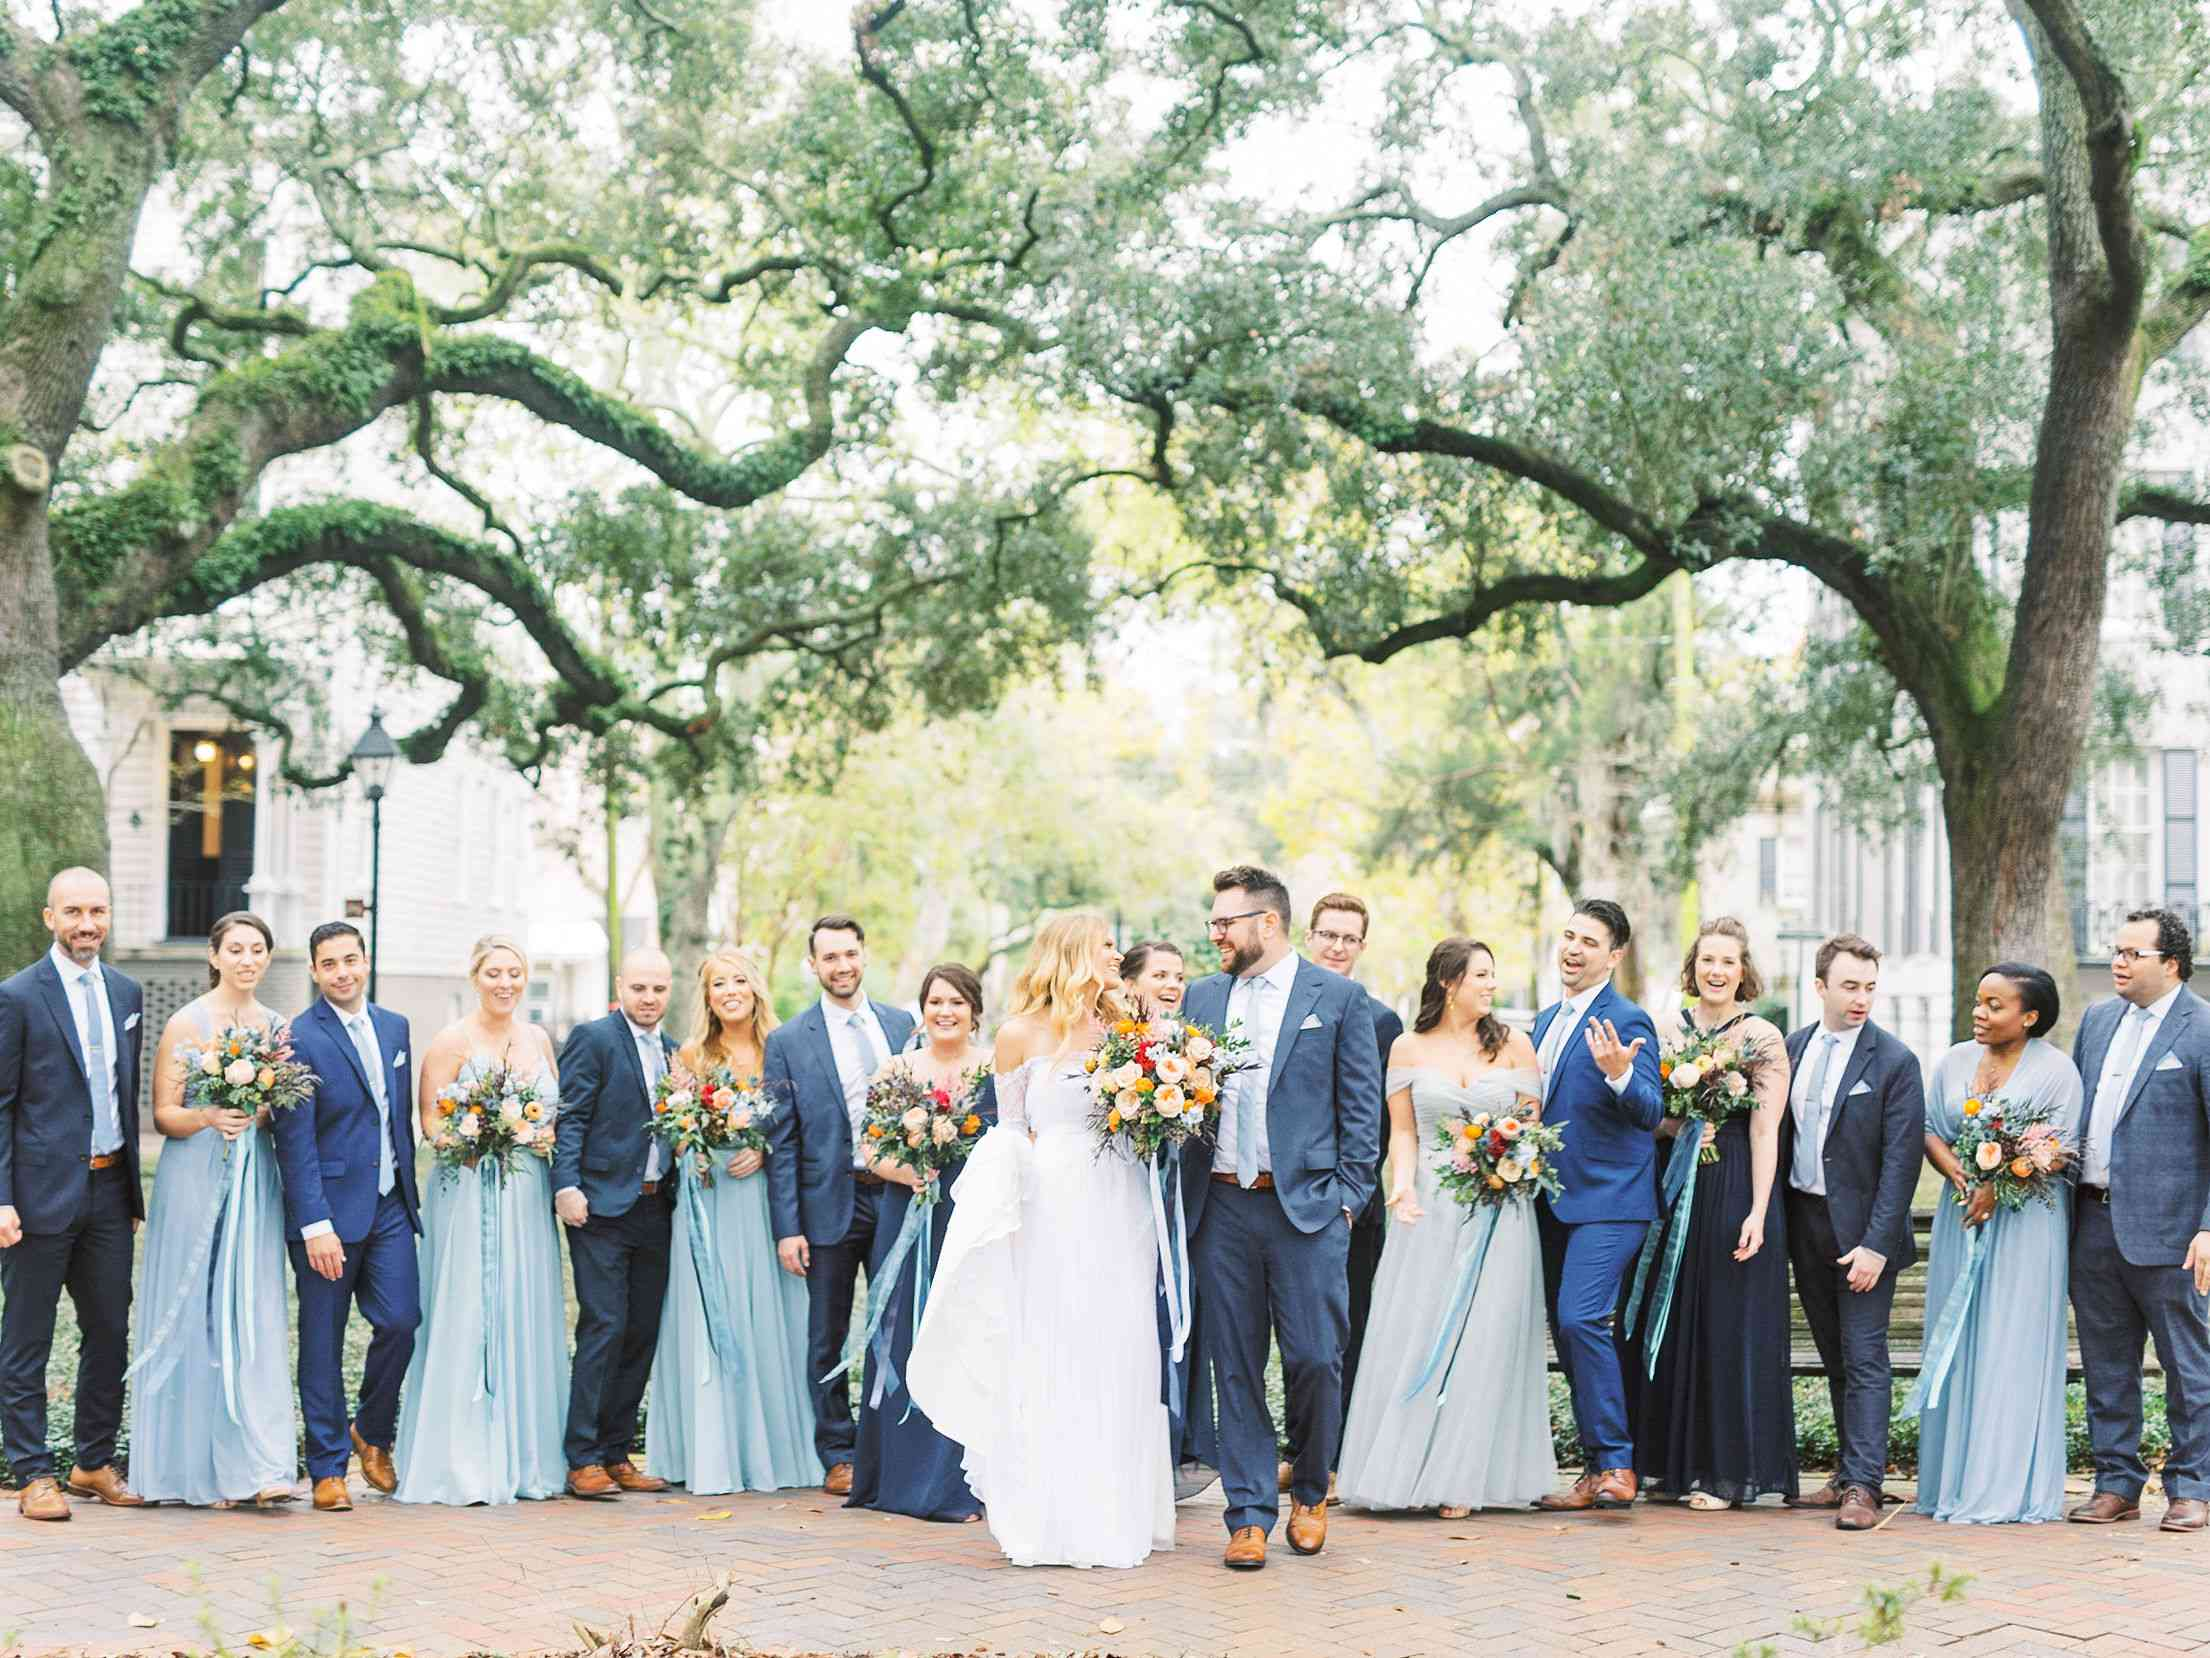 whimsical savannah wedding, bride and groom with wedding party